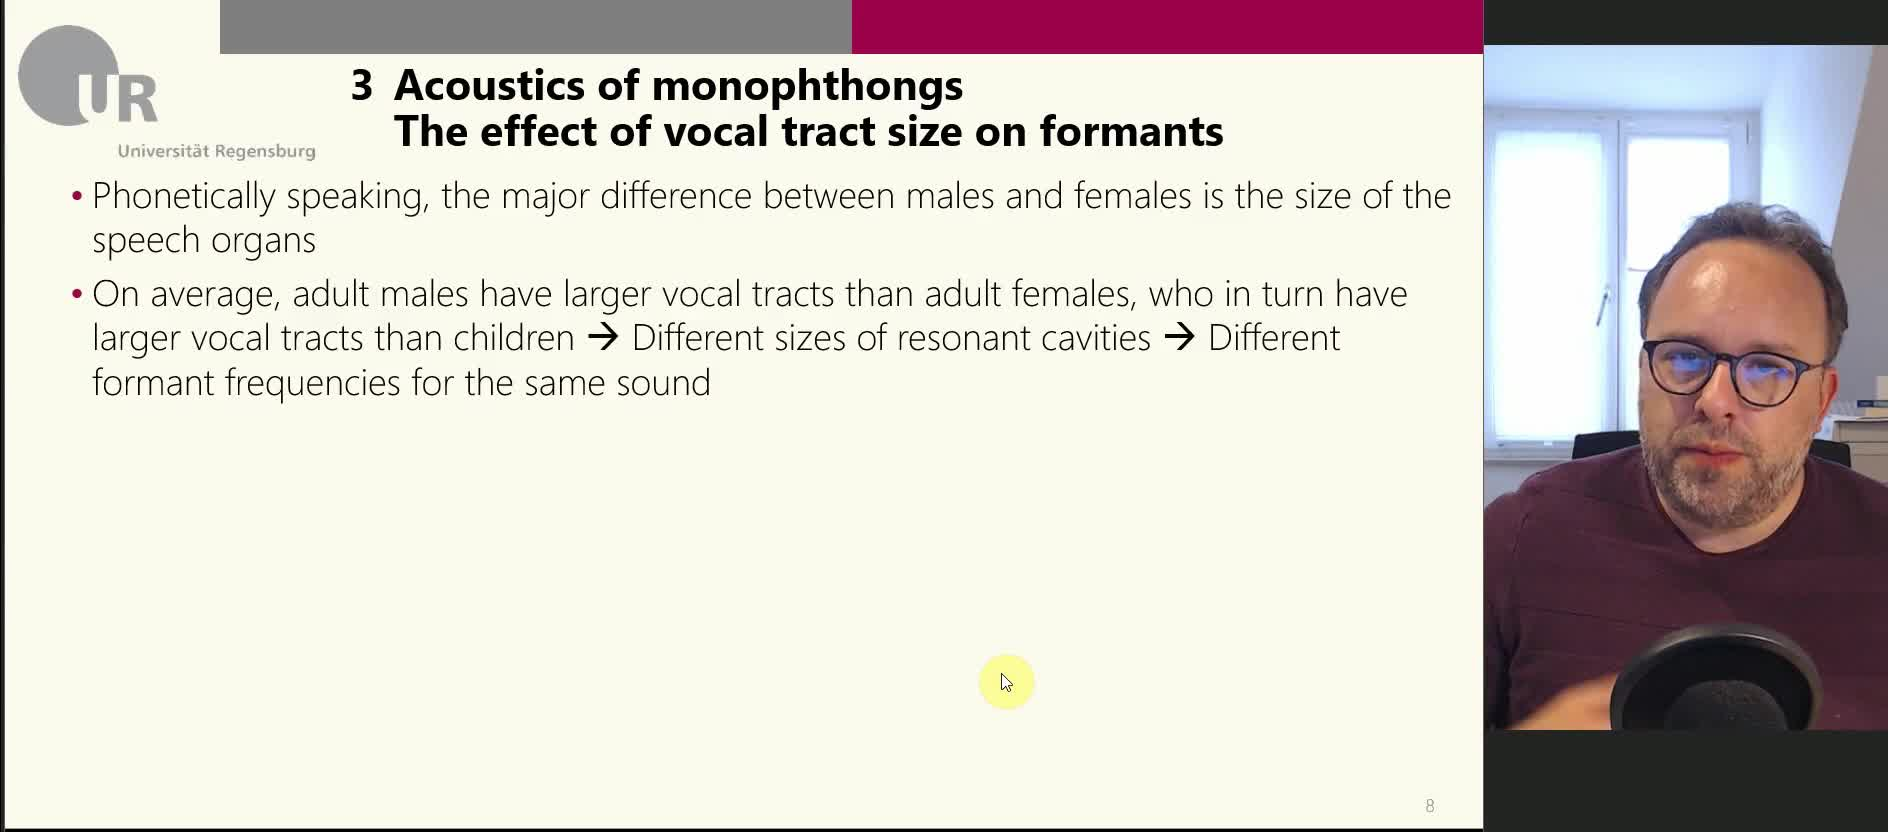 05-03-Acoustics of monophthongs